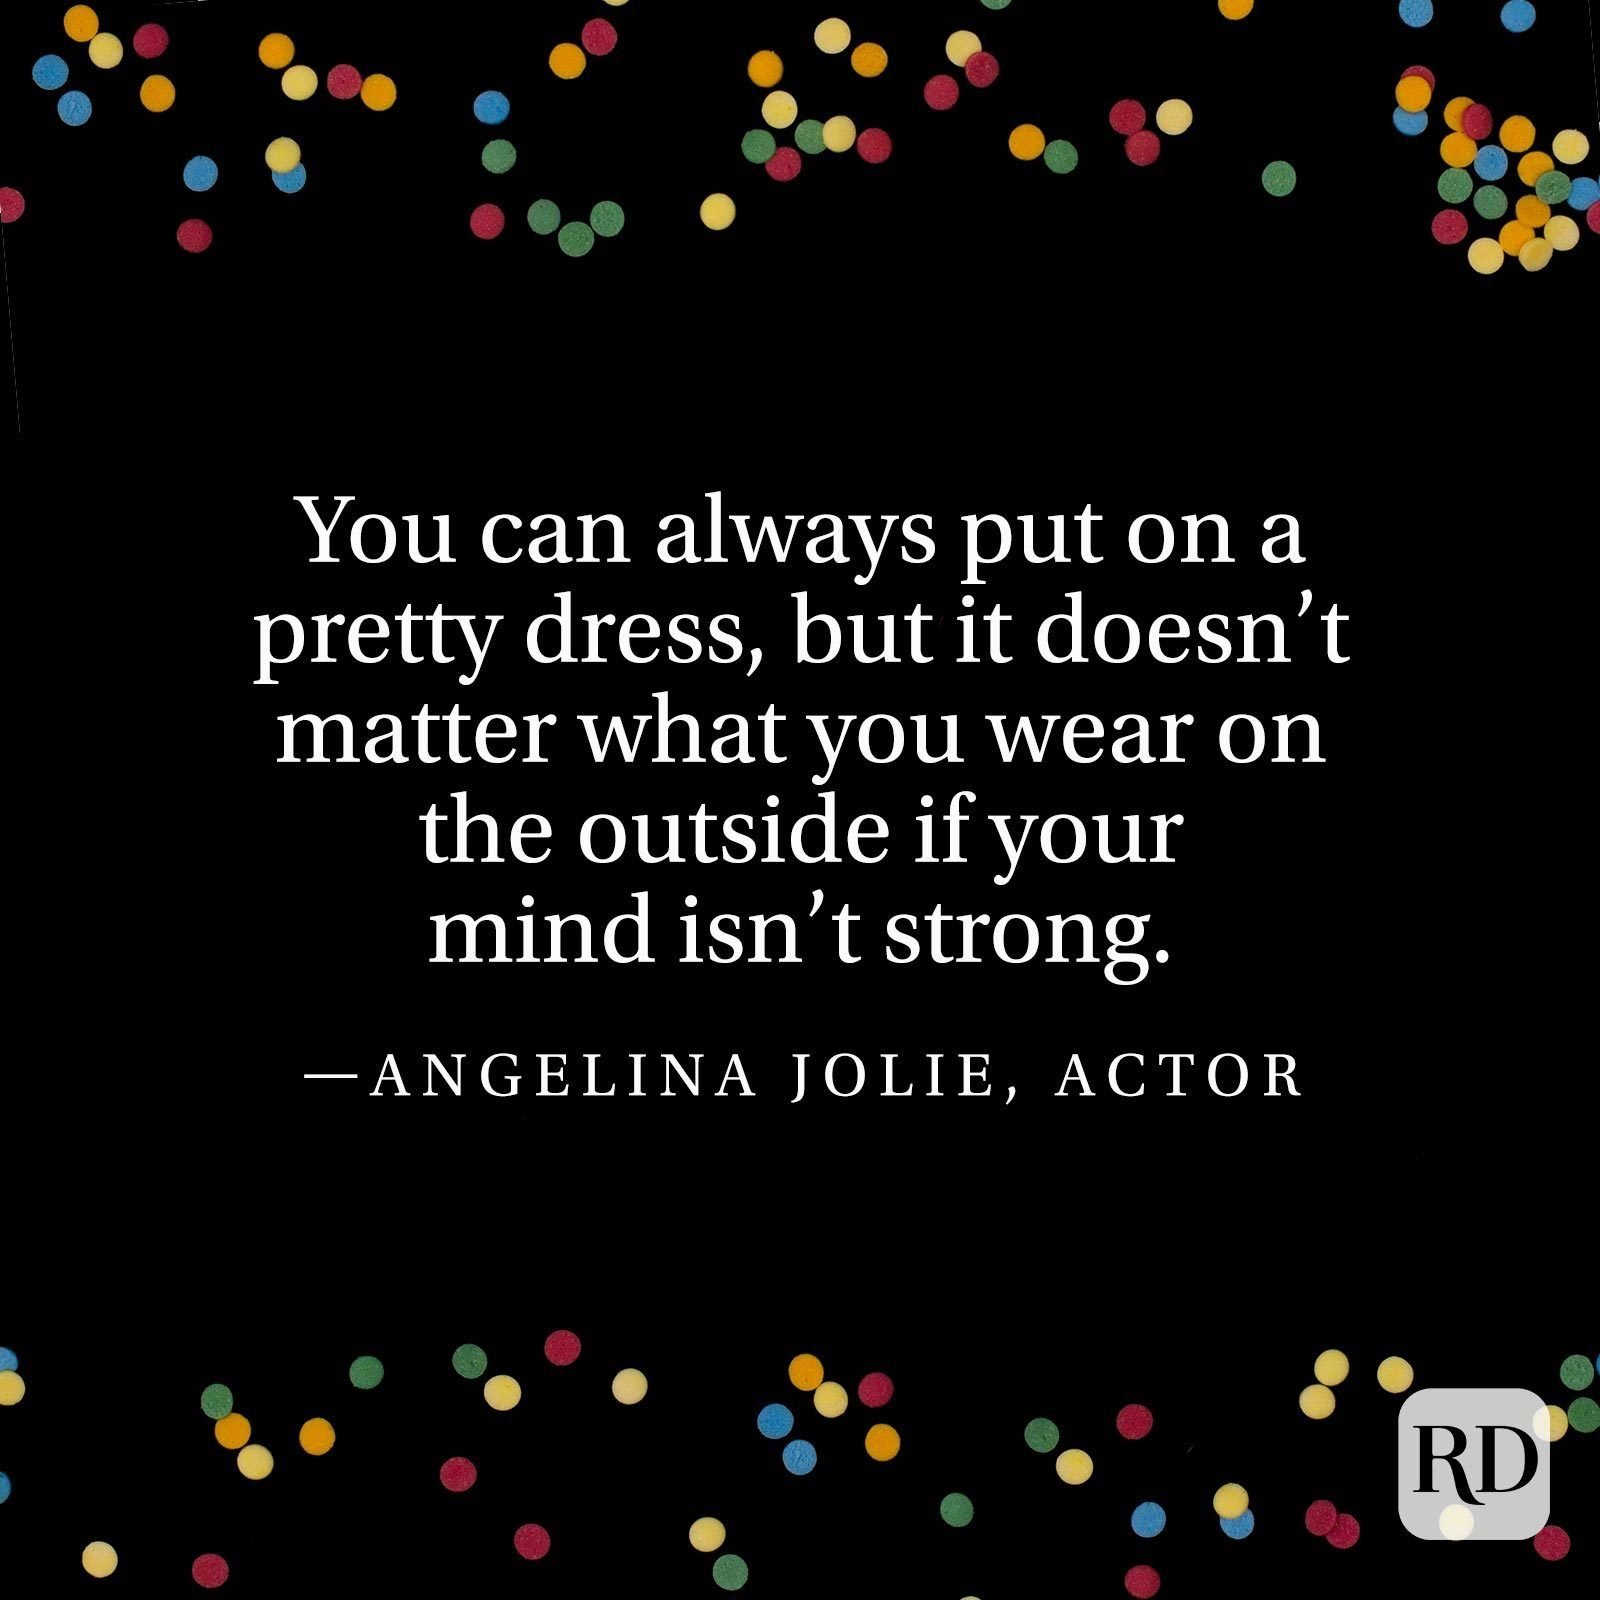 """""""You can always put on a pretty dress, but it doesn't matter what you wear on the outside if your mind isn't strong."""" —Angelina Jolie, actor"""